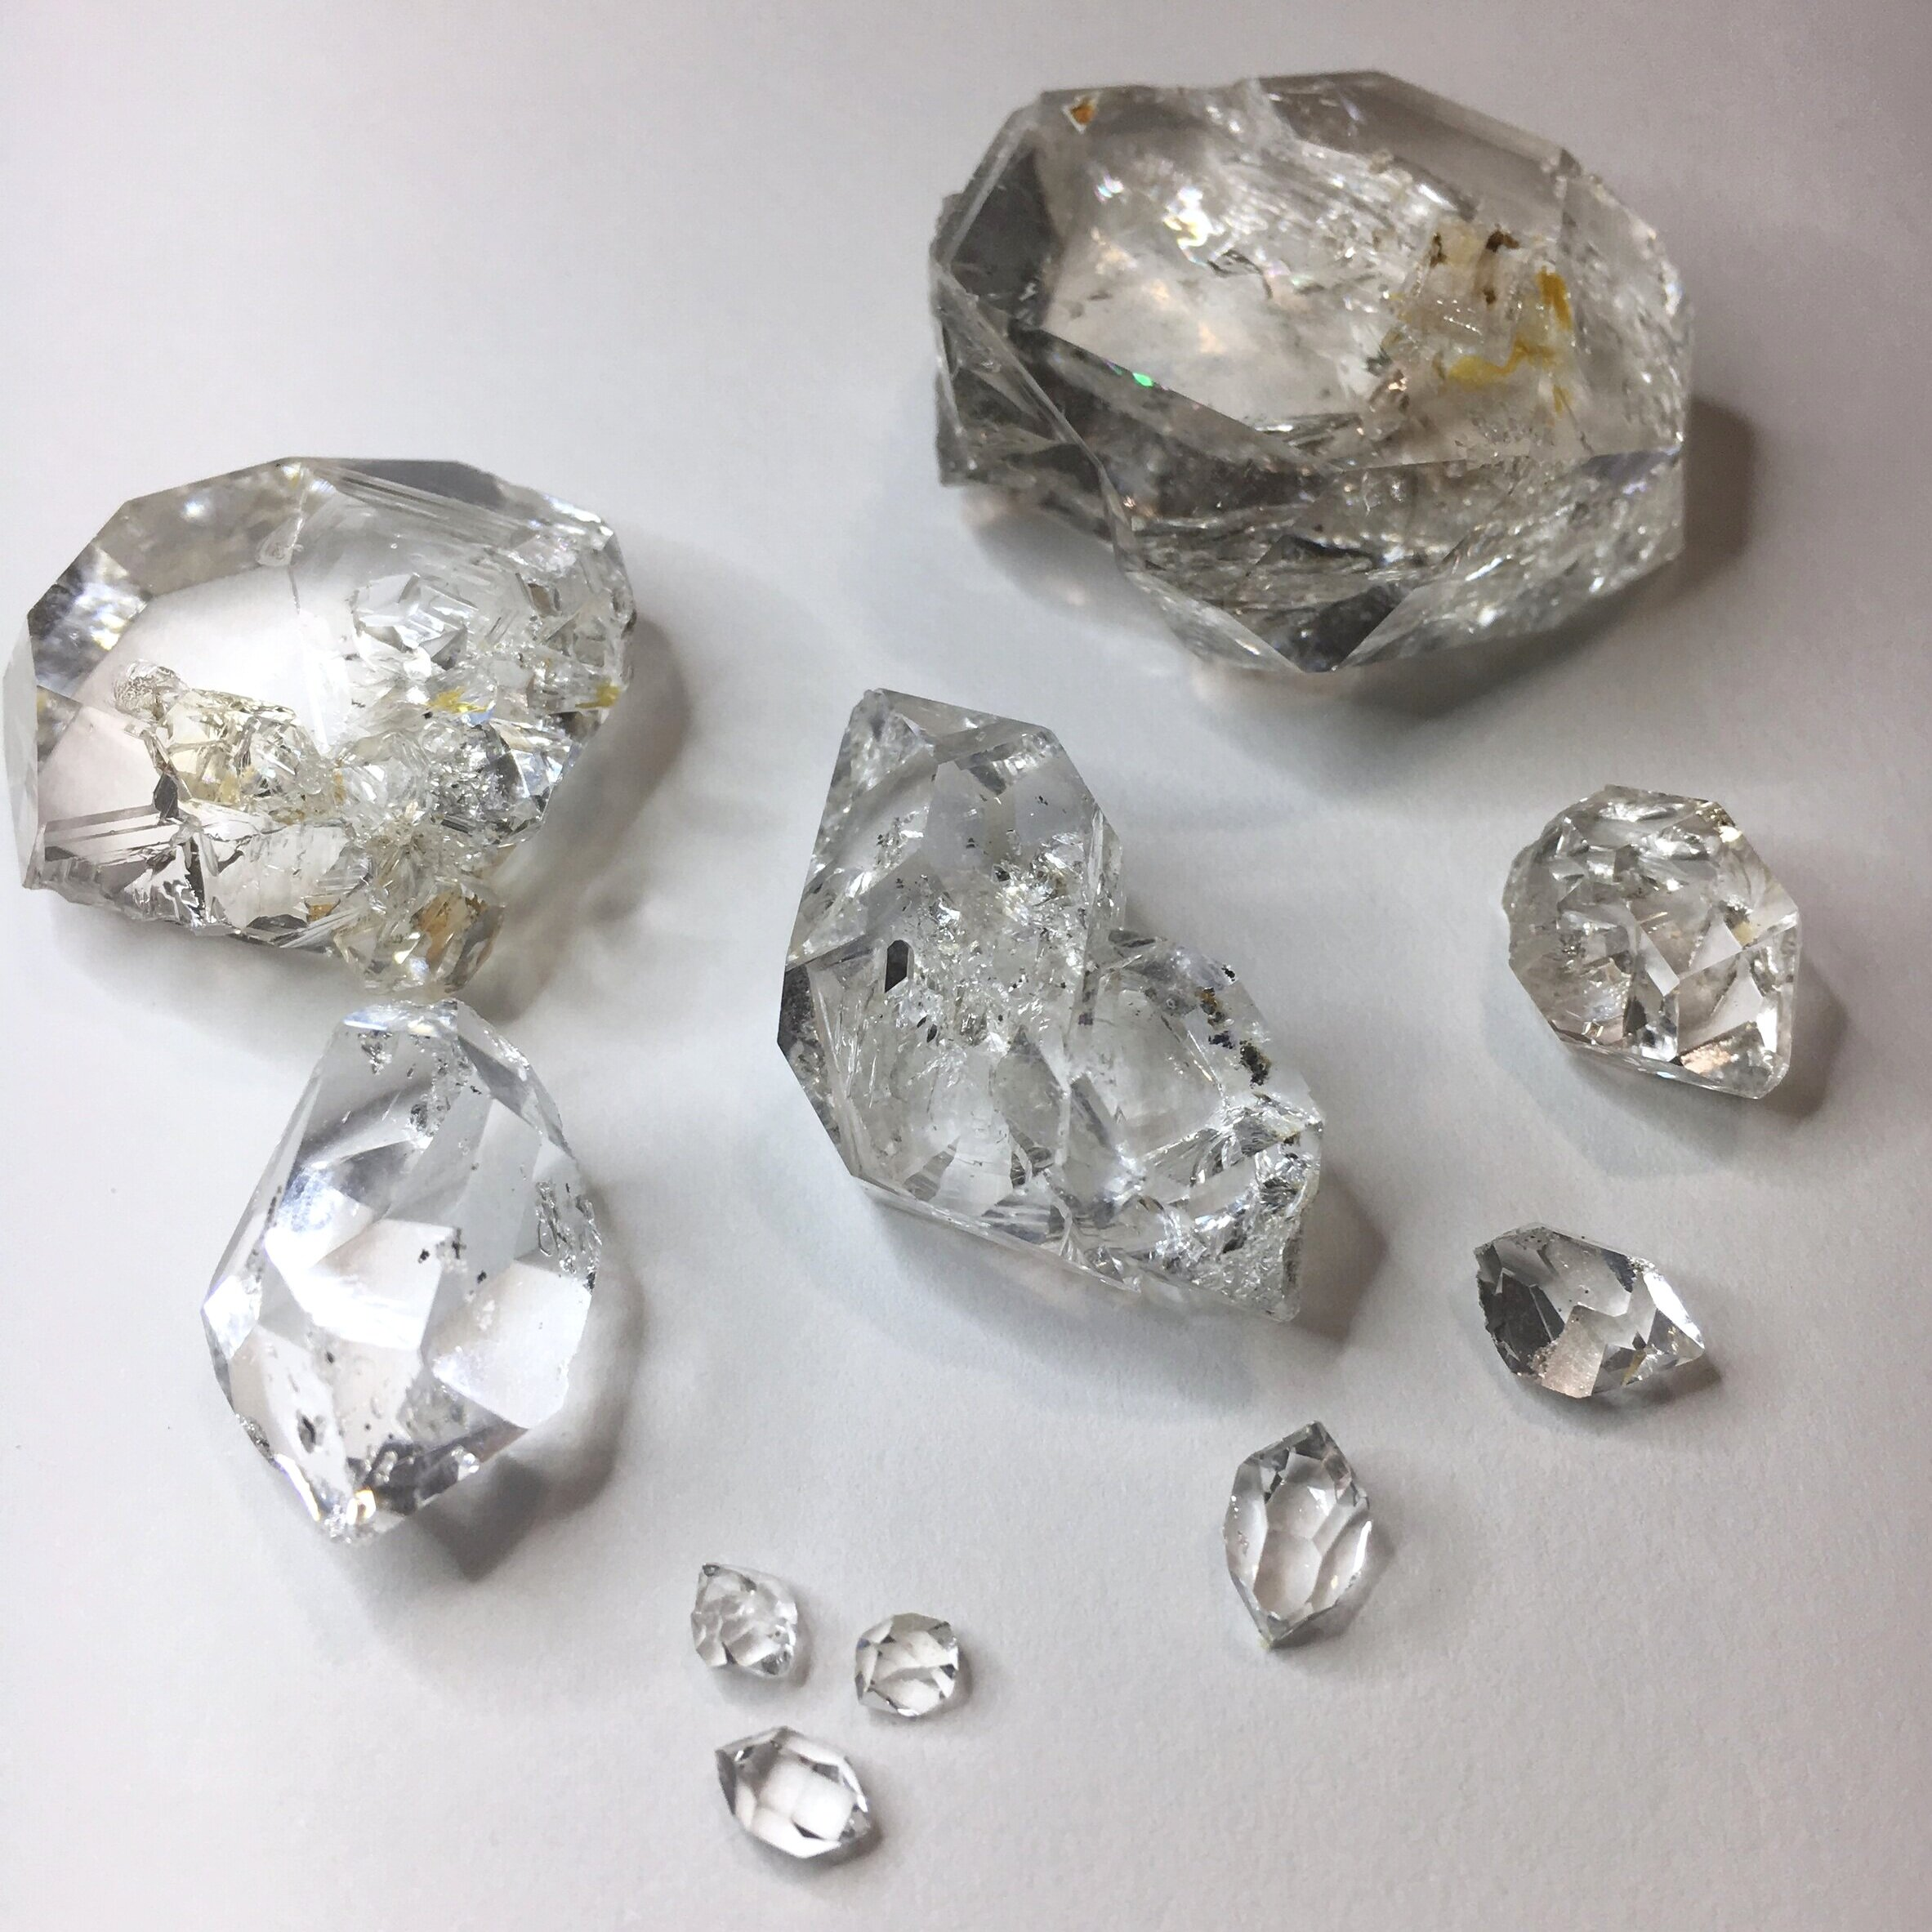 A selection of Herkimer Diamond Quartz Crystals mined by jewelry designers, Michelle Pajak-Reynolds, Valerie Heck Esmont and Trista Bonnett at the Ace of Diamonds Mine in Middleville, New York, in September 2019. Photo credit: Michelle Pajak-Reynolds